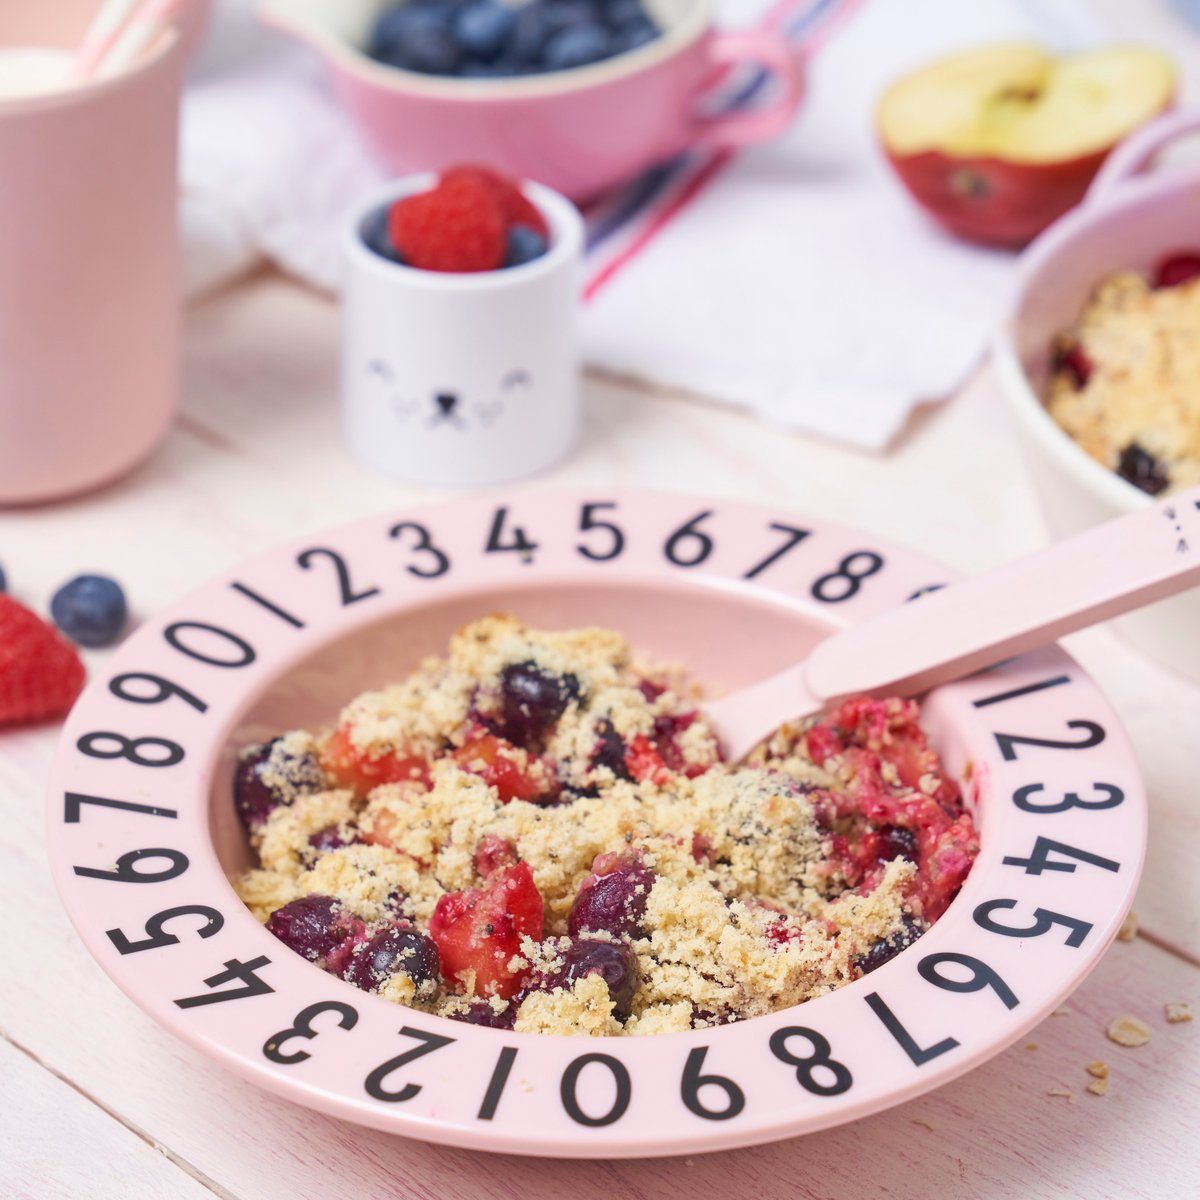 There's nothing more perfect than digging into a warm crumble on a cold Saturday night..!⁠ ~⁠ Easy to prepare and never disappointing, try my fool proof berry crumble recipe that even the little ones can eat (if you don't first)!! 👉 https://t.co/mQMSyxk4F4 https://t.co/PanXEhfR5k